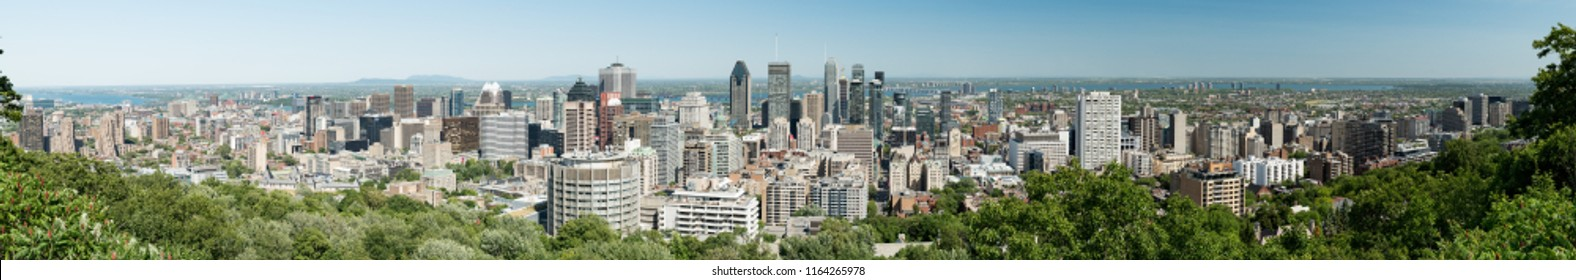 Montreal, Quebec, Canada - July 9, 2018:  Panoramic view of downtown looking southeast from Mount Royal Chalet lookout in Mount Royal Park.